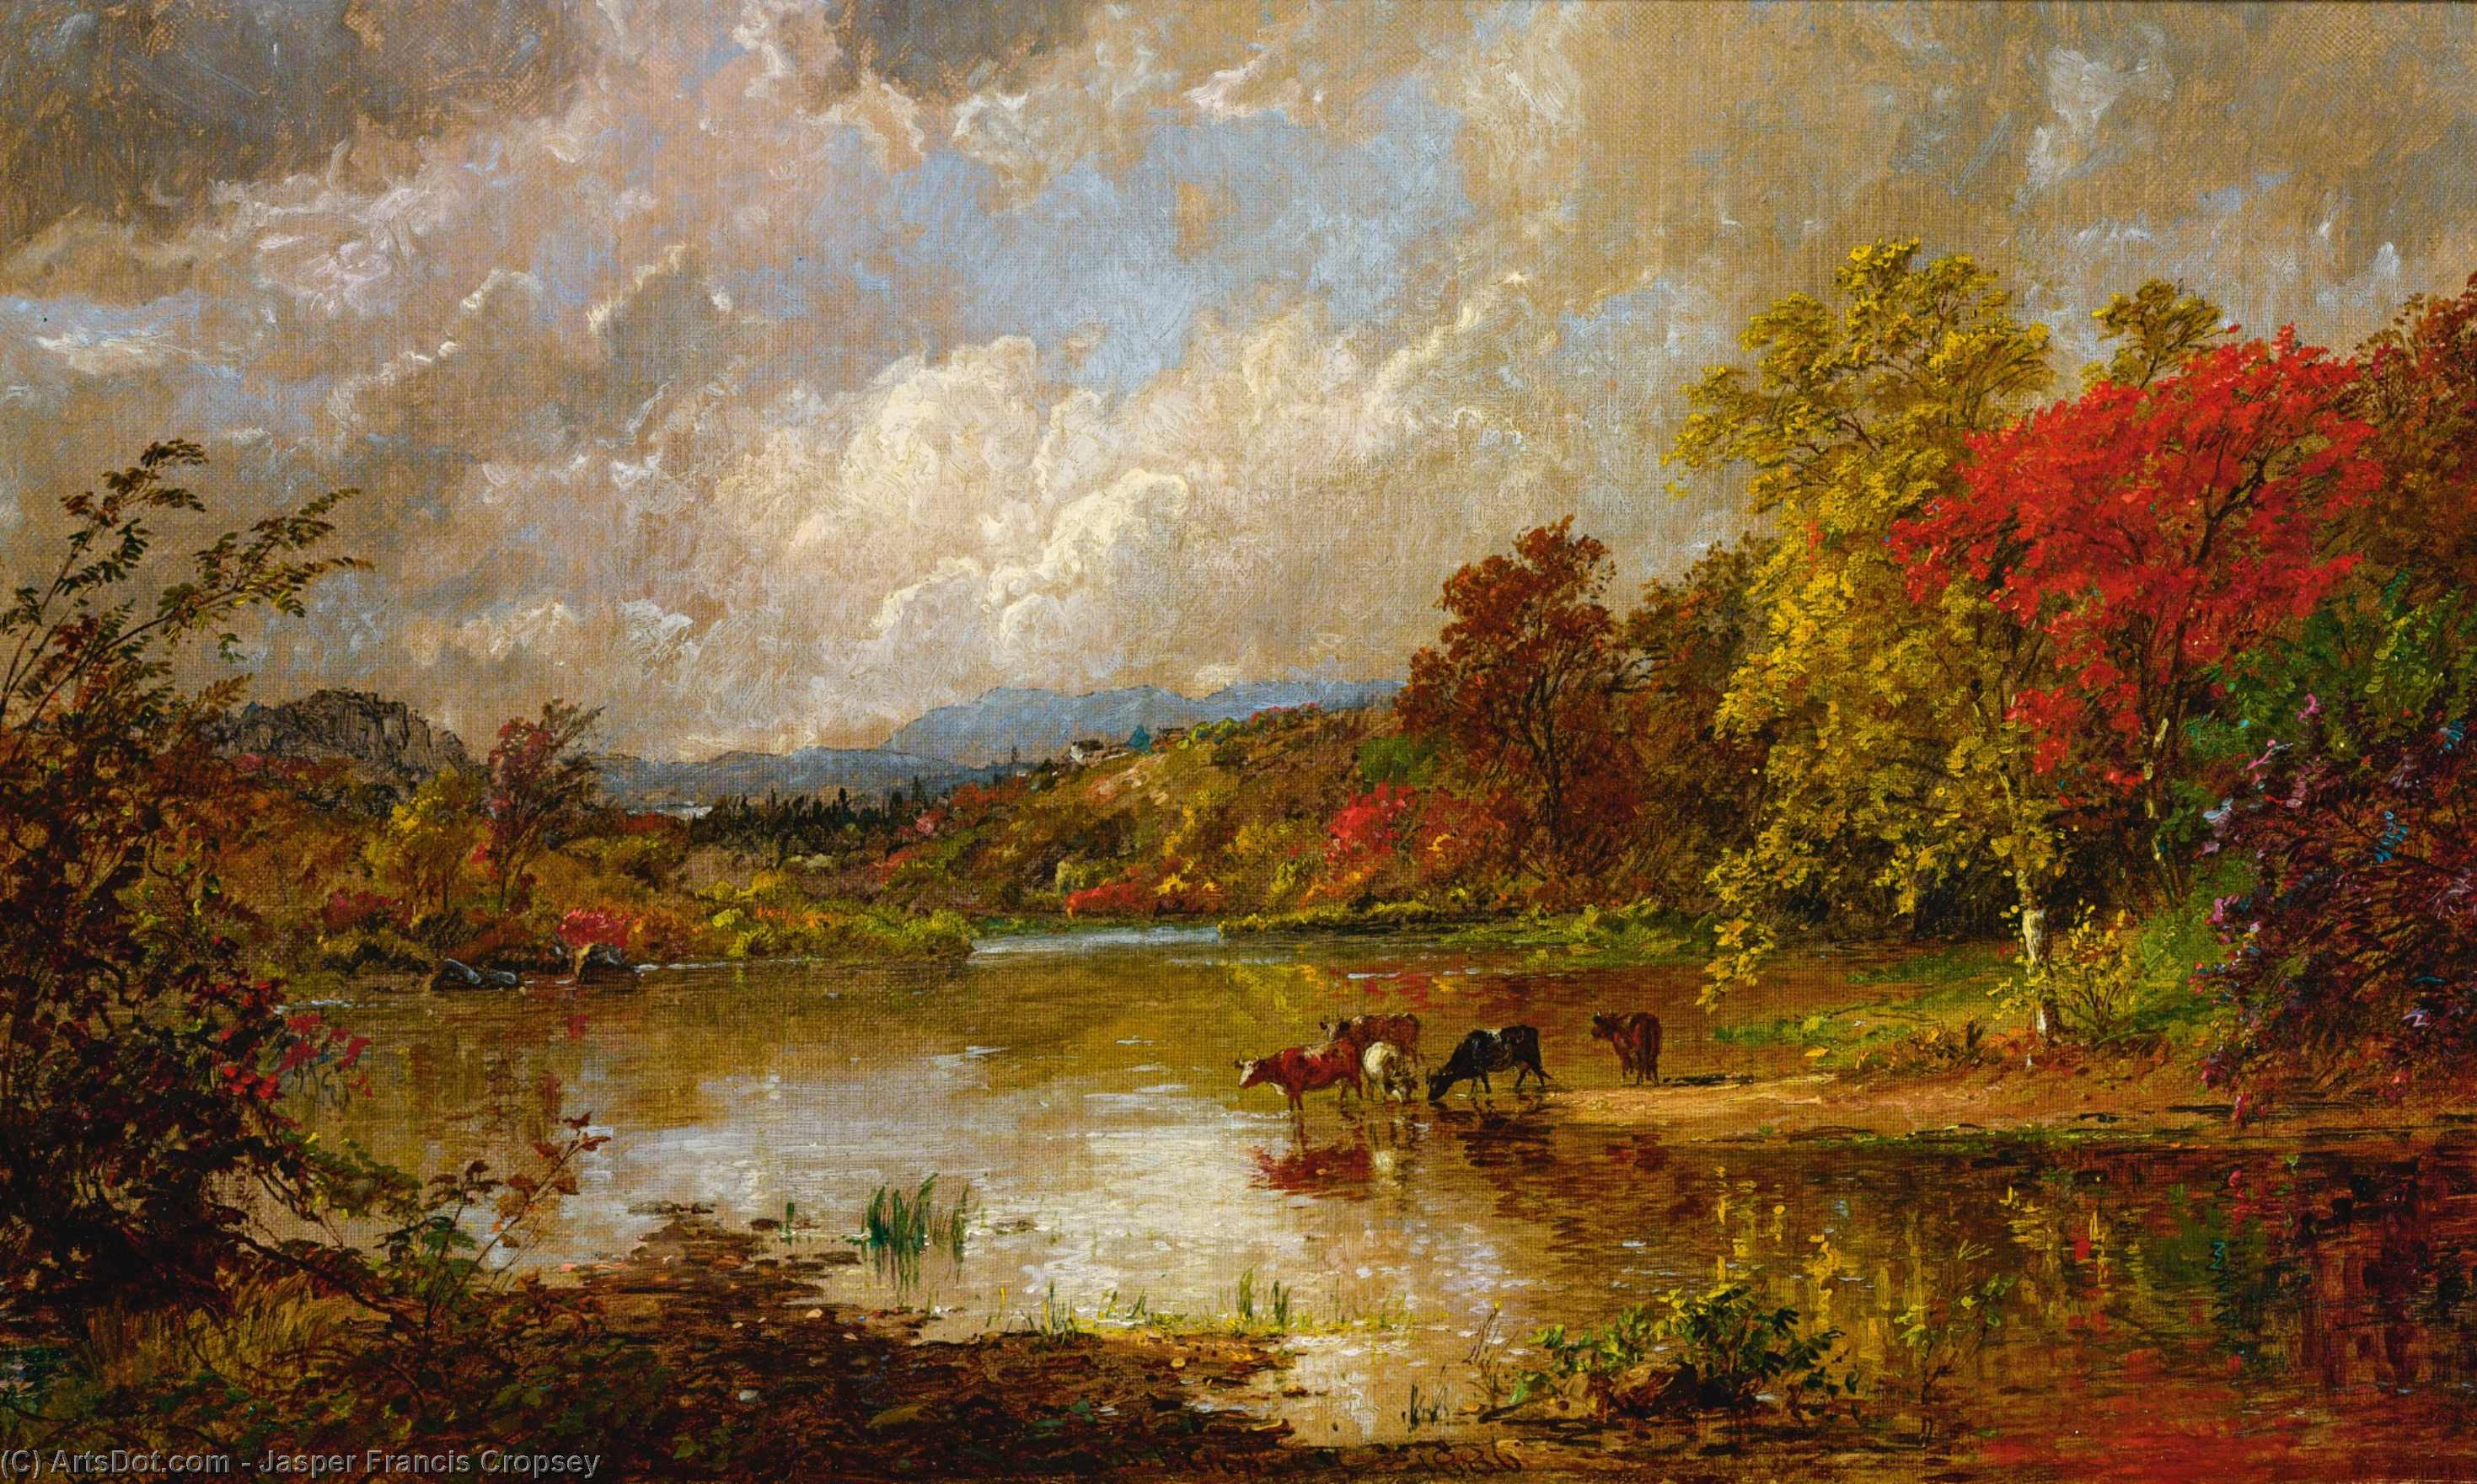 An October Day, Oil On Canvas by Jasper Francis Cropsey (1823-1900, United States)